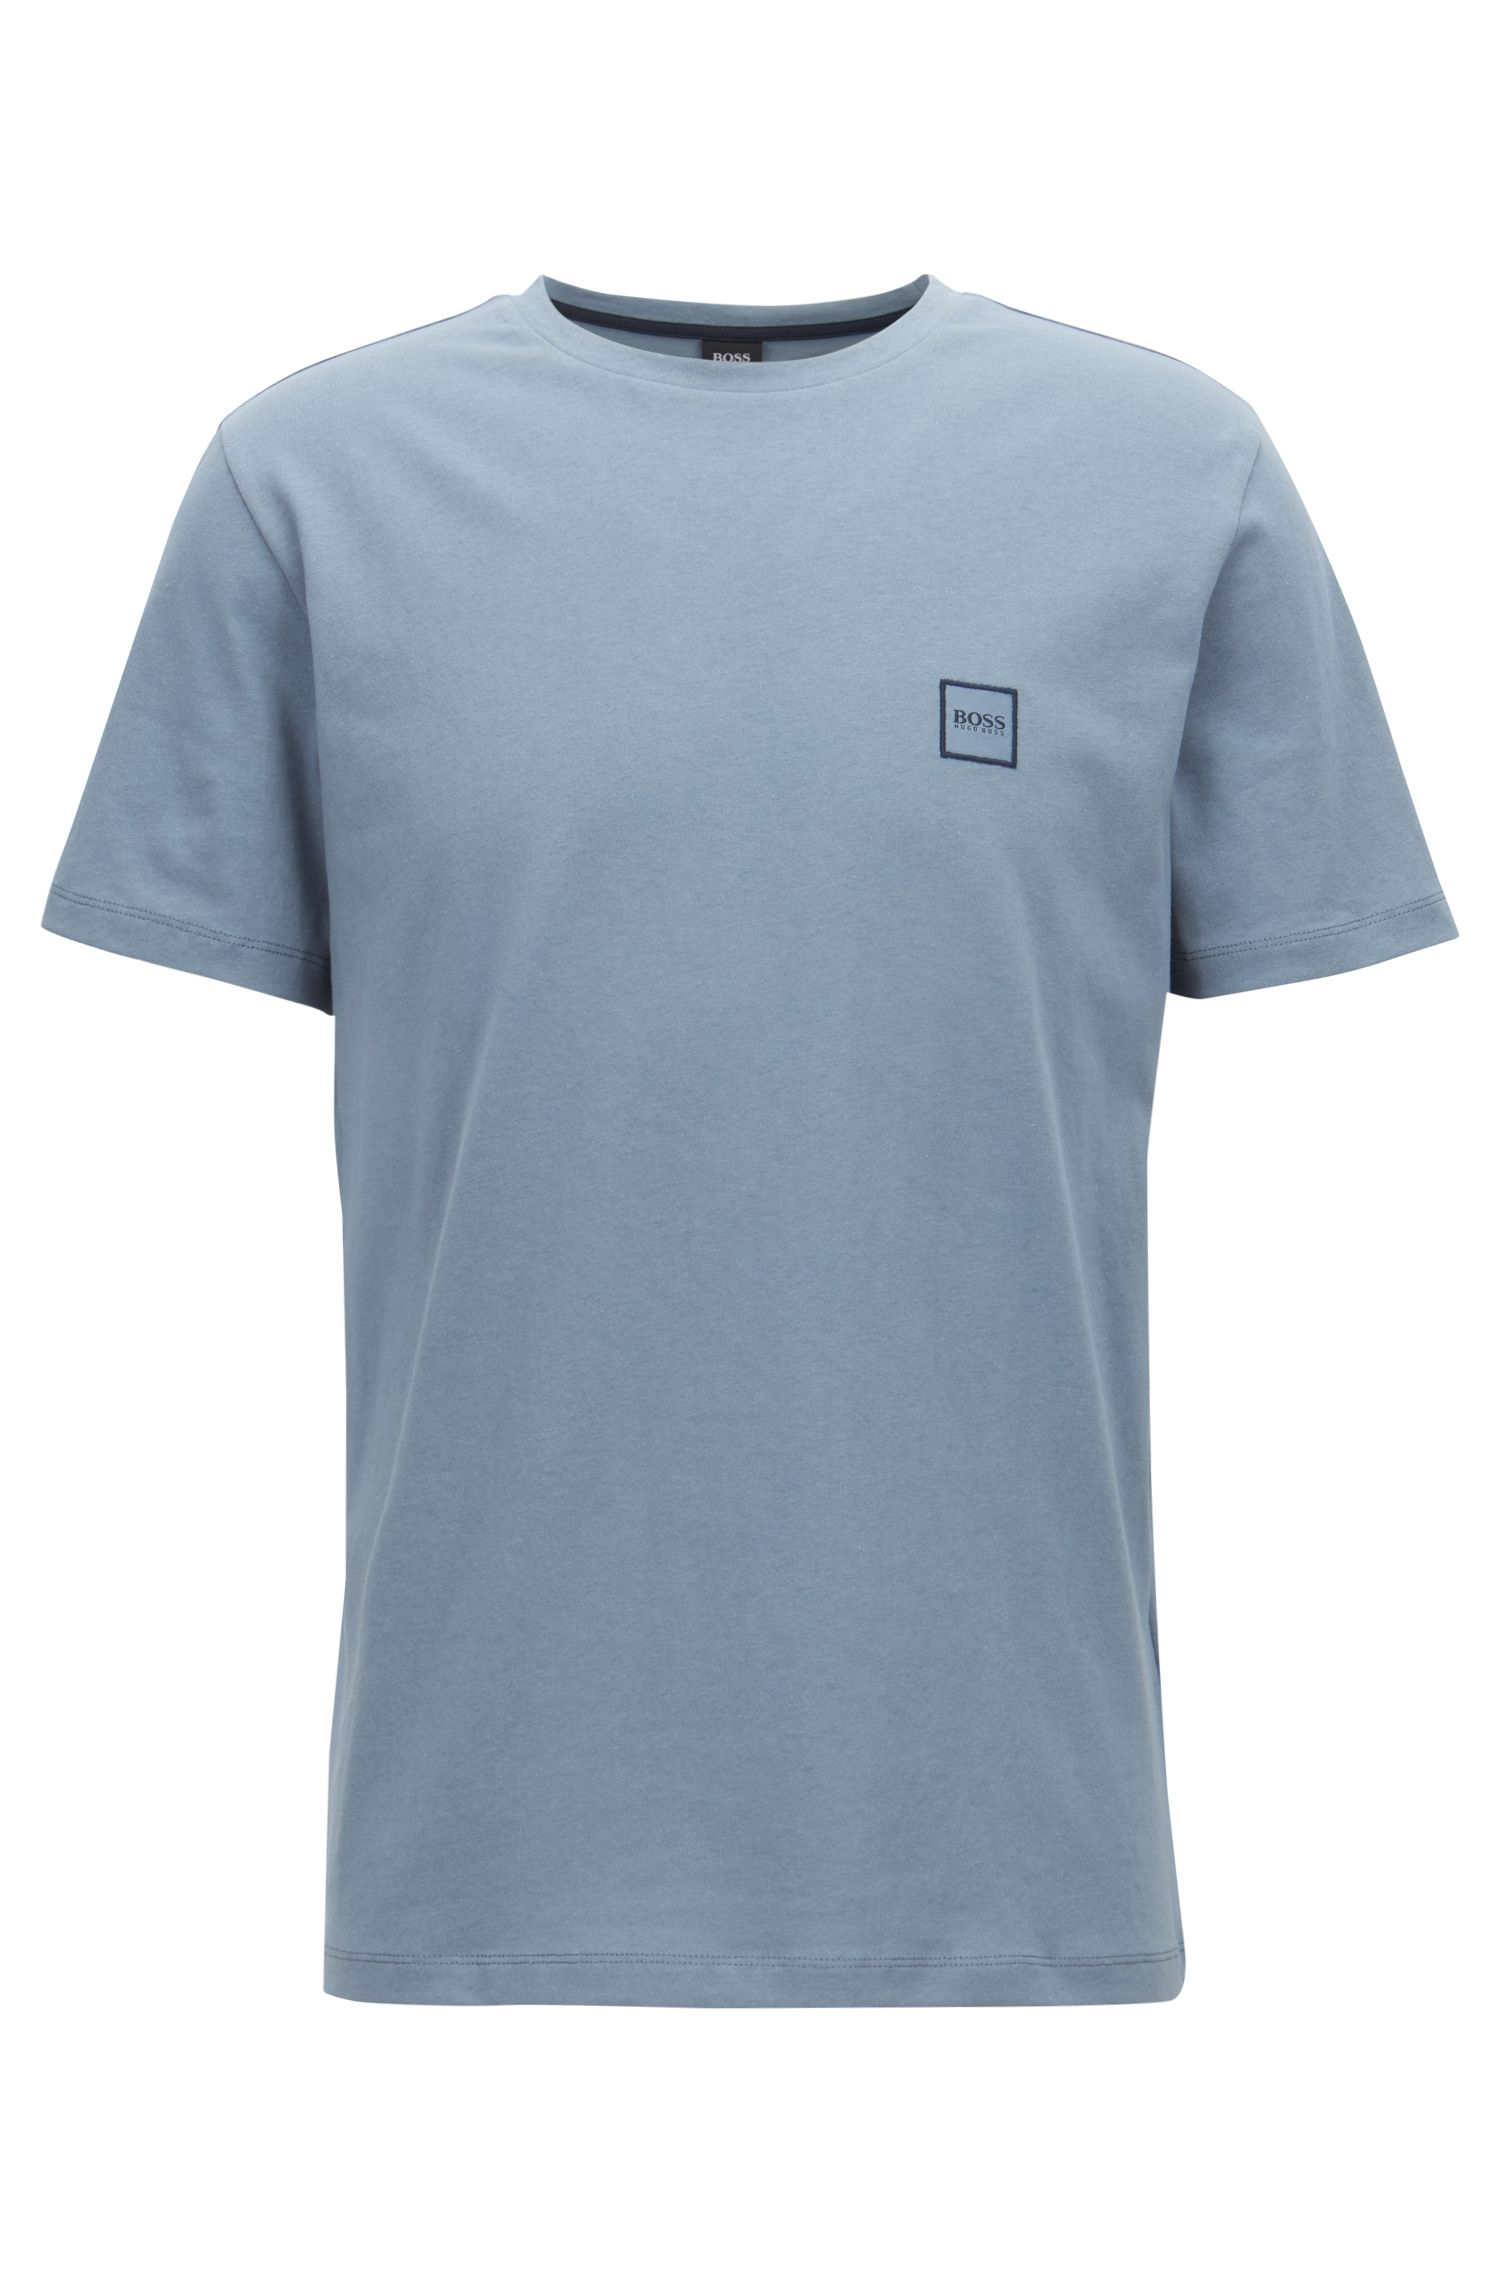 Crew-neck T-shirt in single-jersey cotton, Open Blue